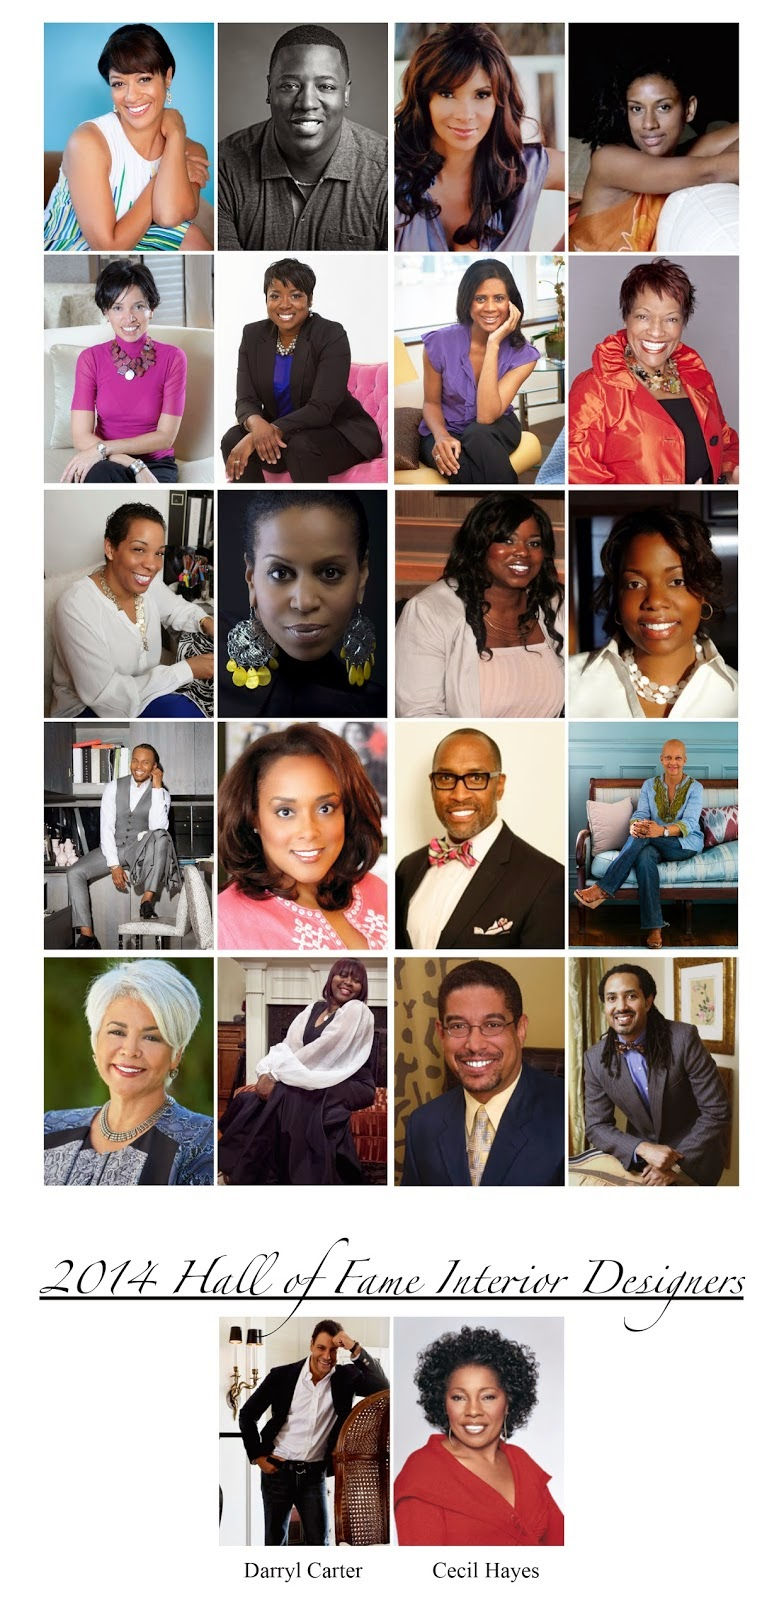 The 2014 African American Top 20 Interior Designers